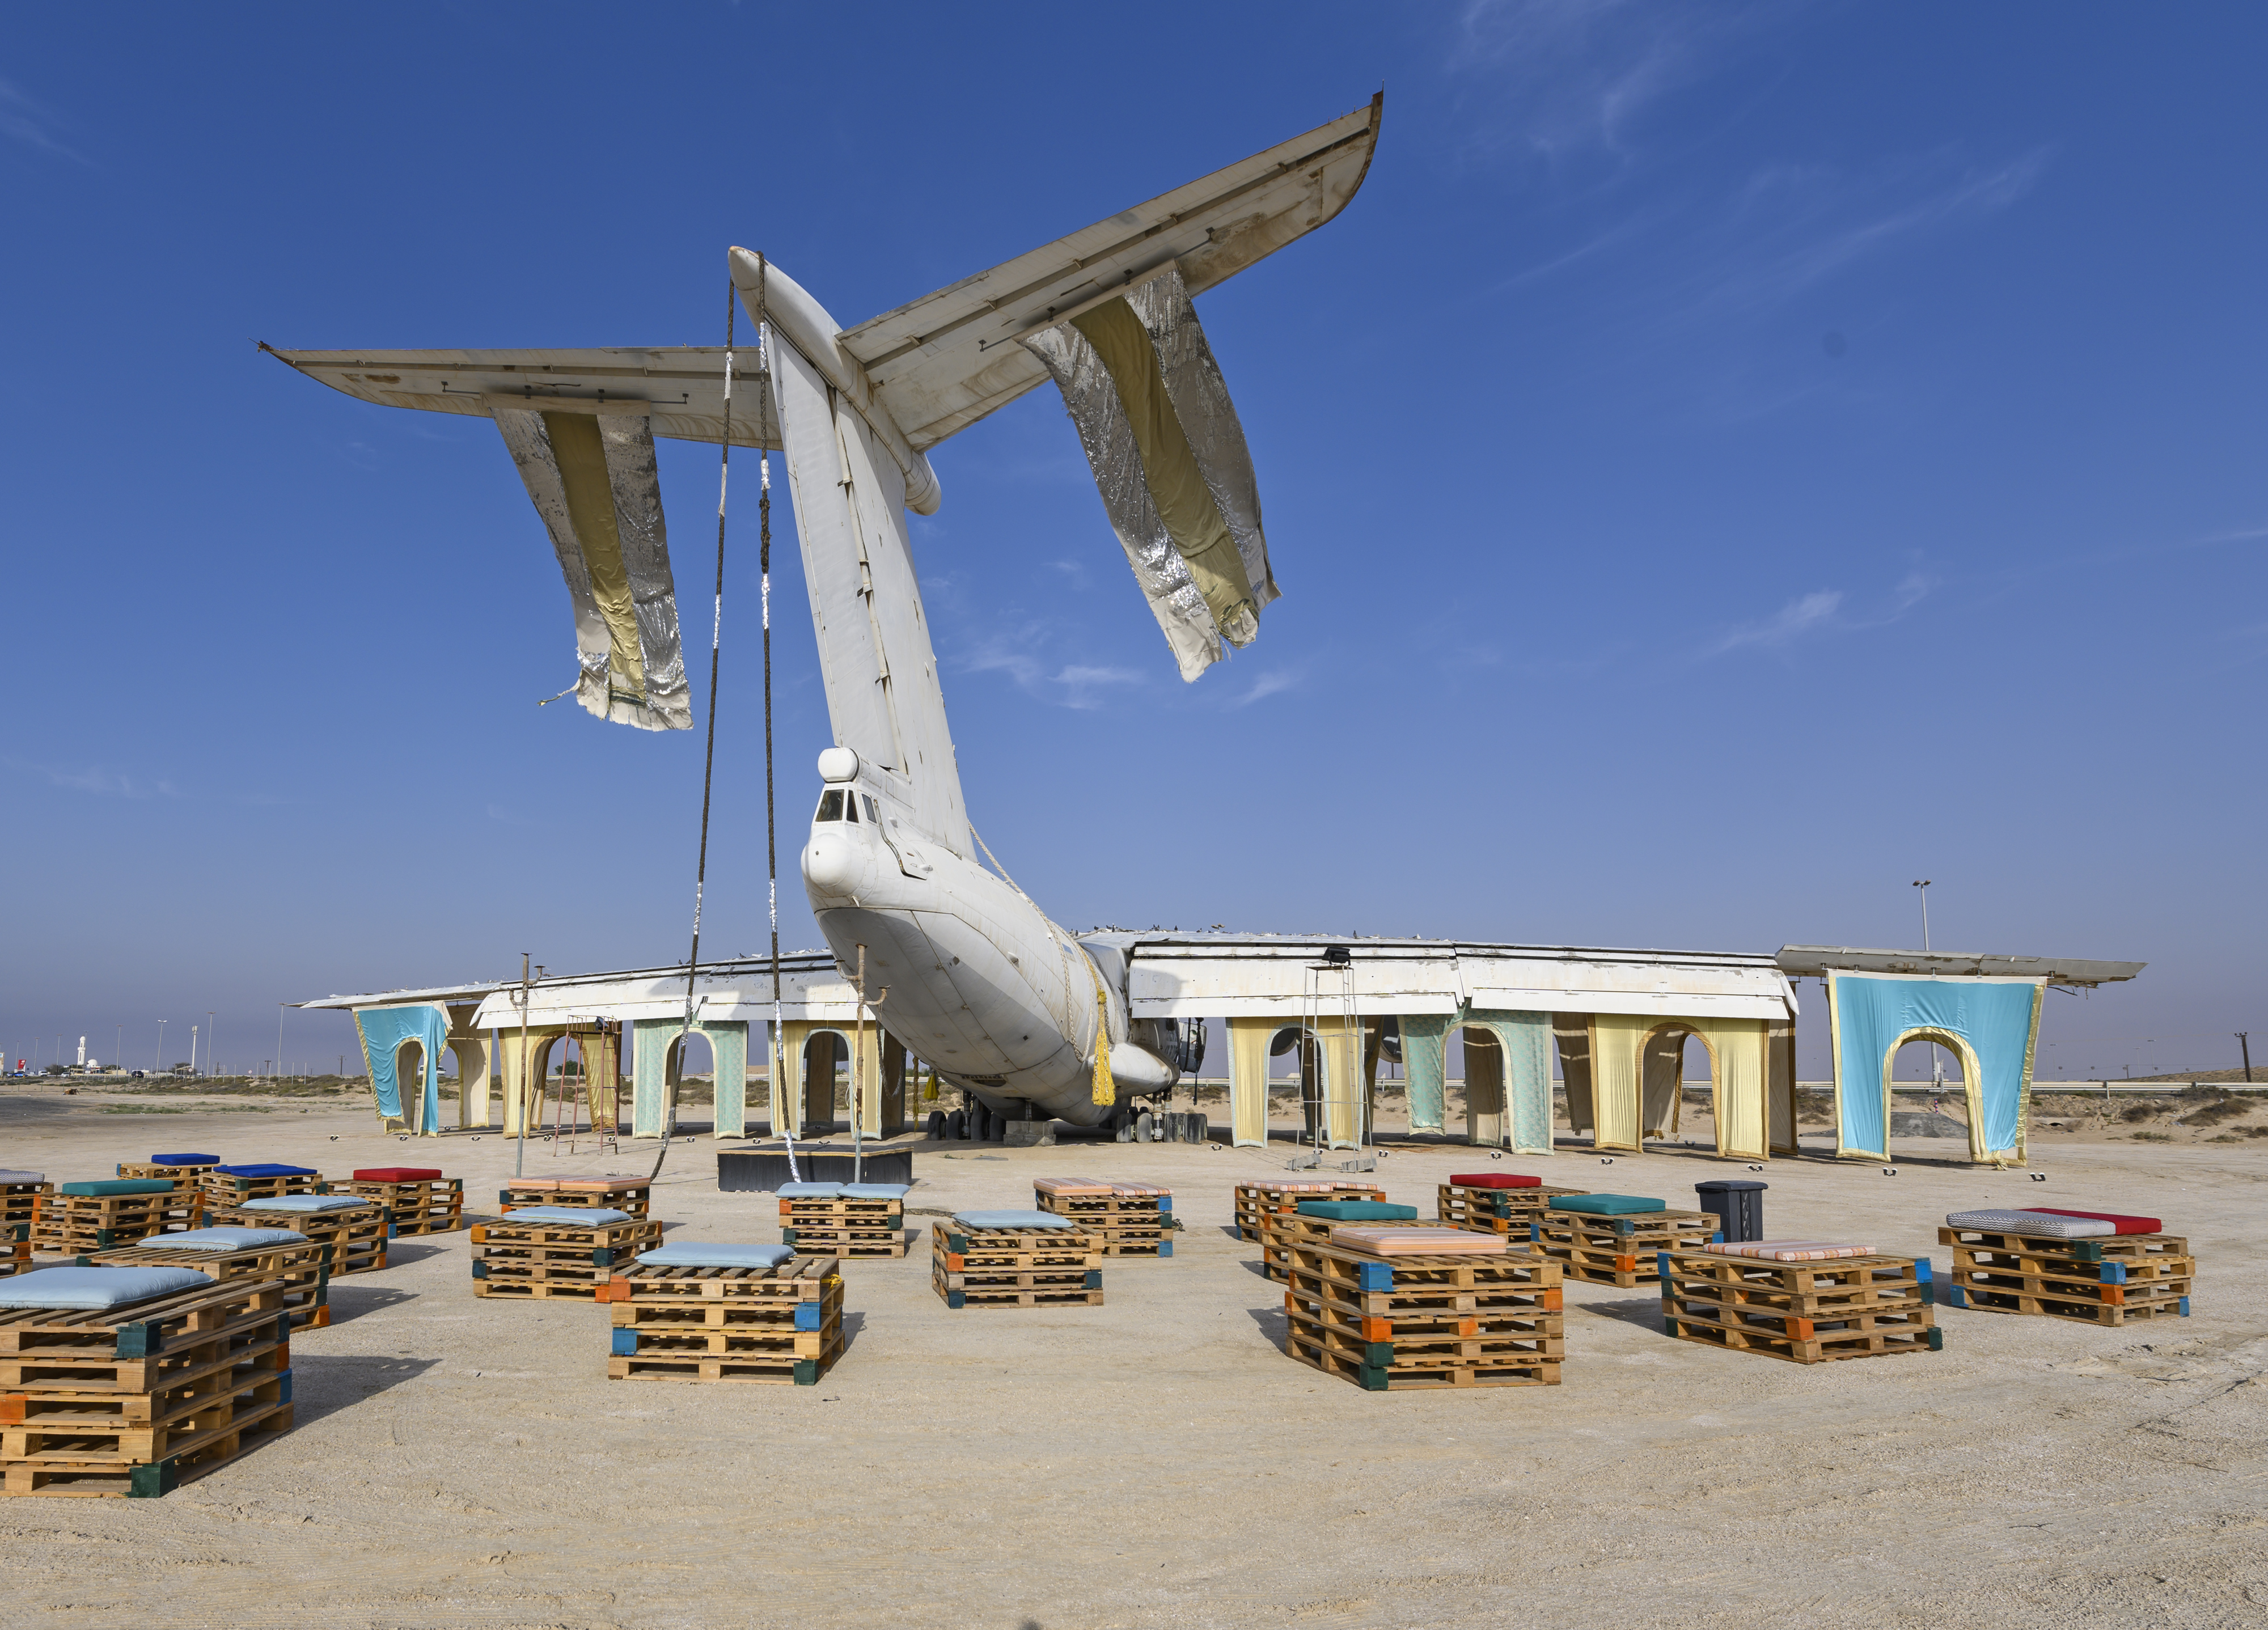 New Orleans Airlift, <br> The Trans-National, 2019, Abandoned airplane site, Umm Al Quwain